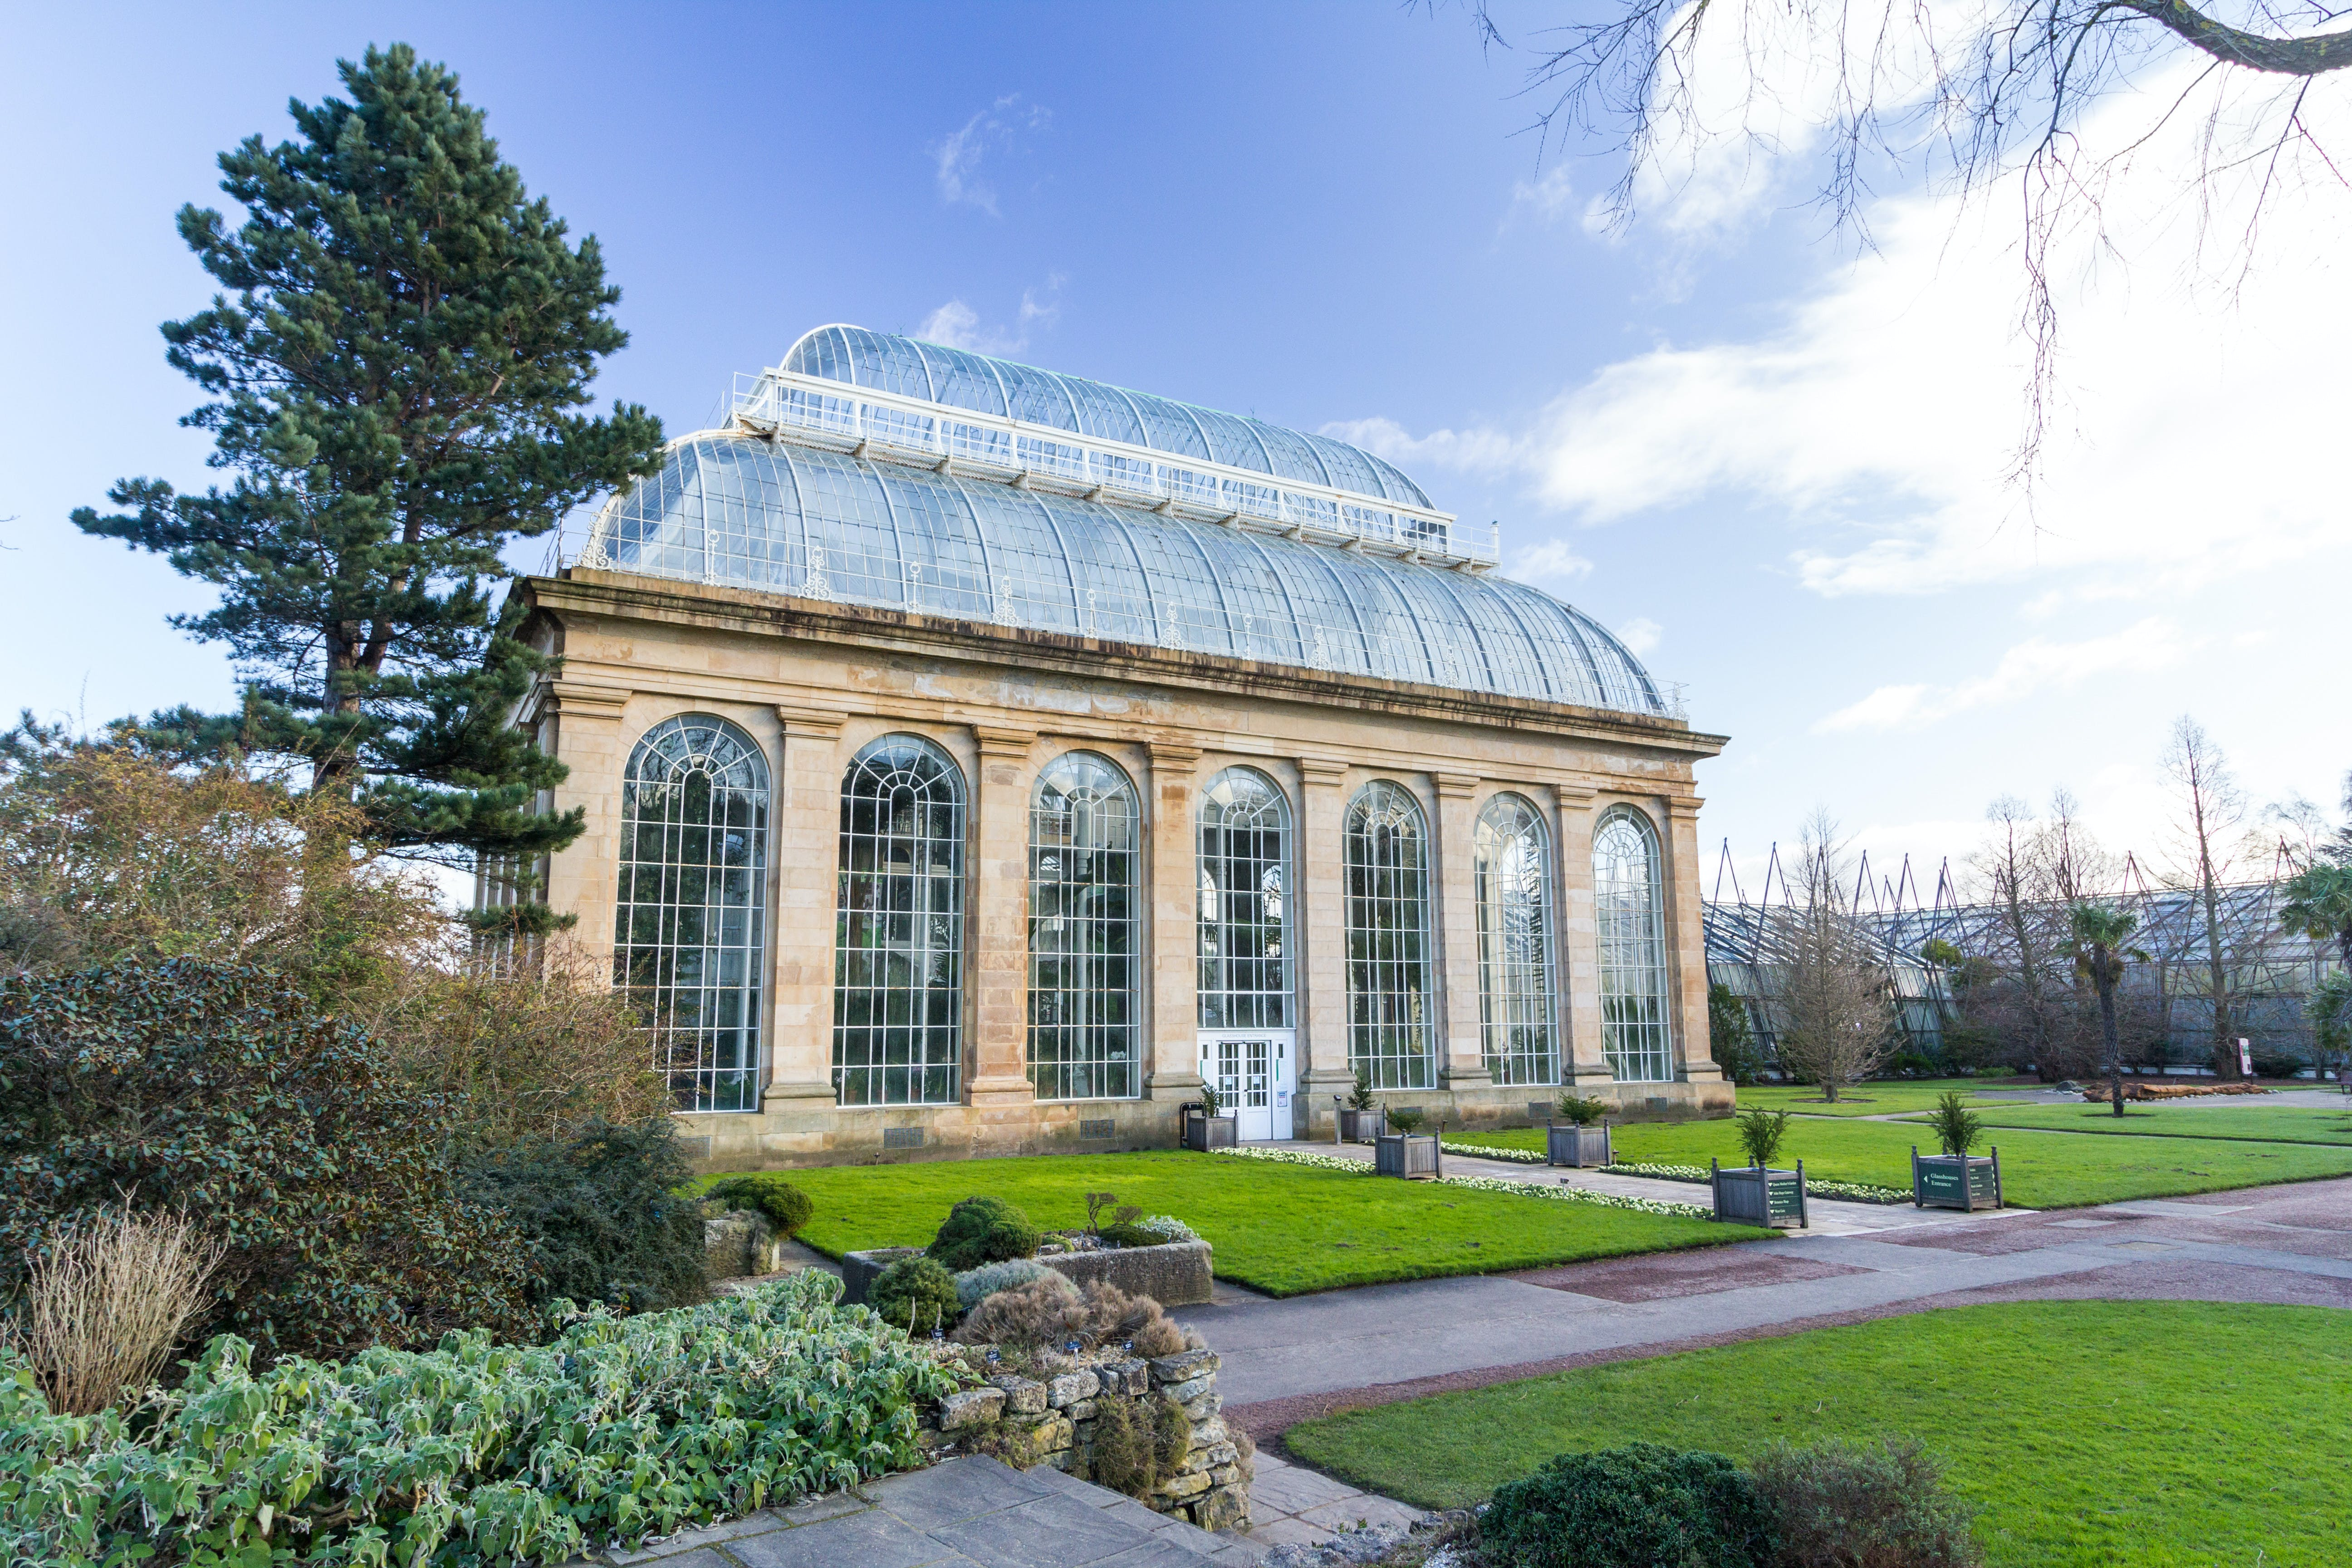 5 Of The Most Beautiful Botanical Gardens In Europe Musement